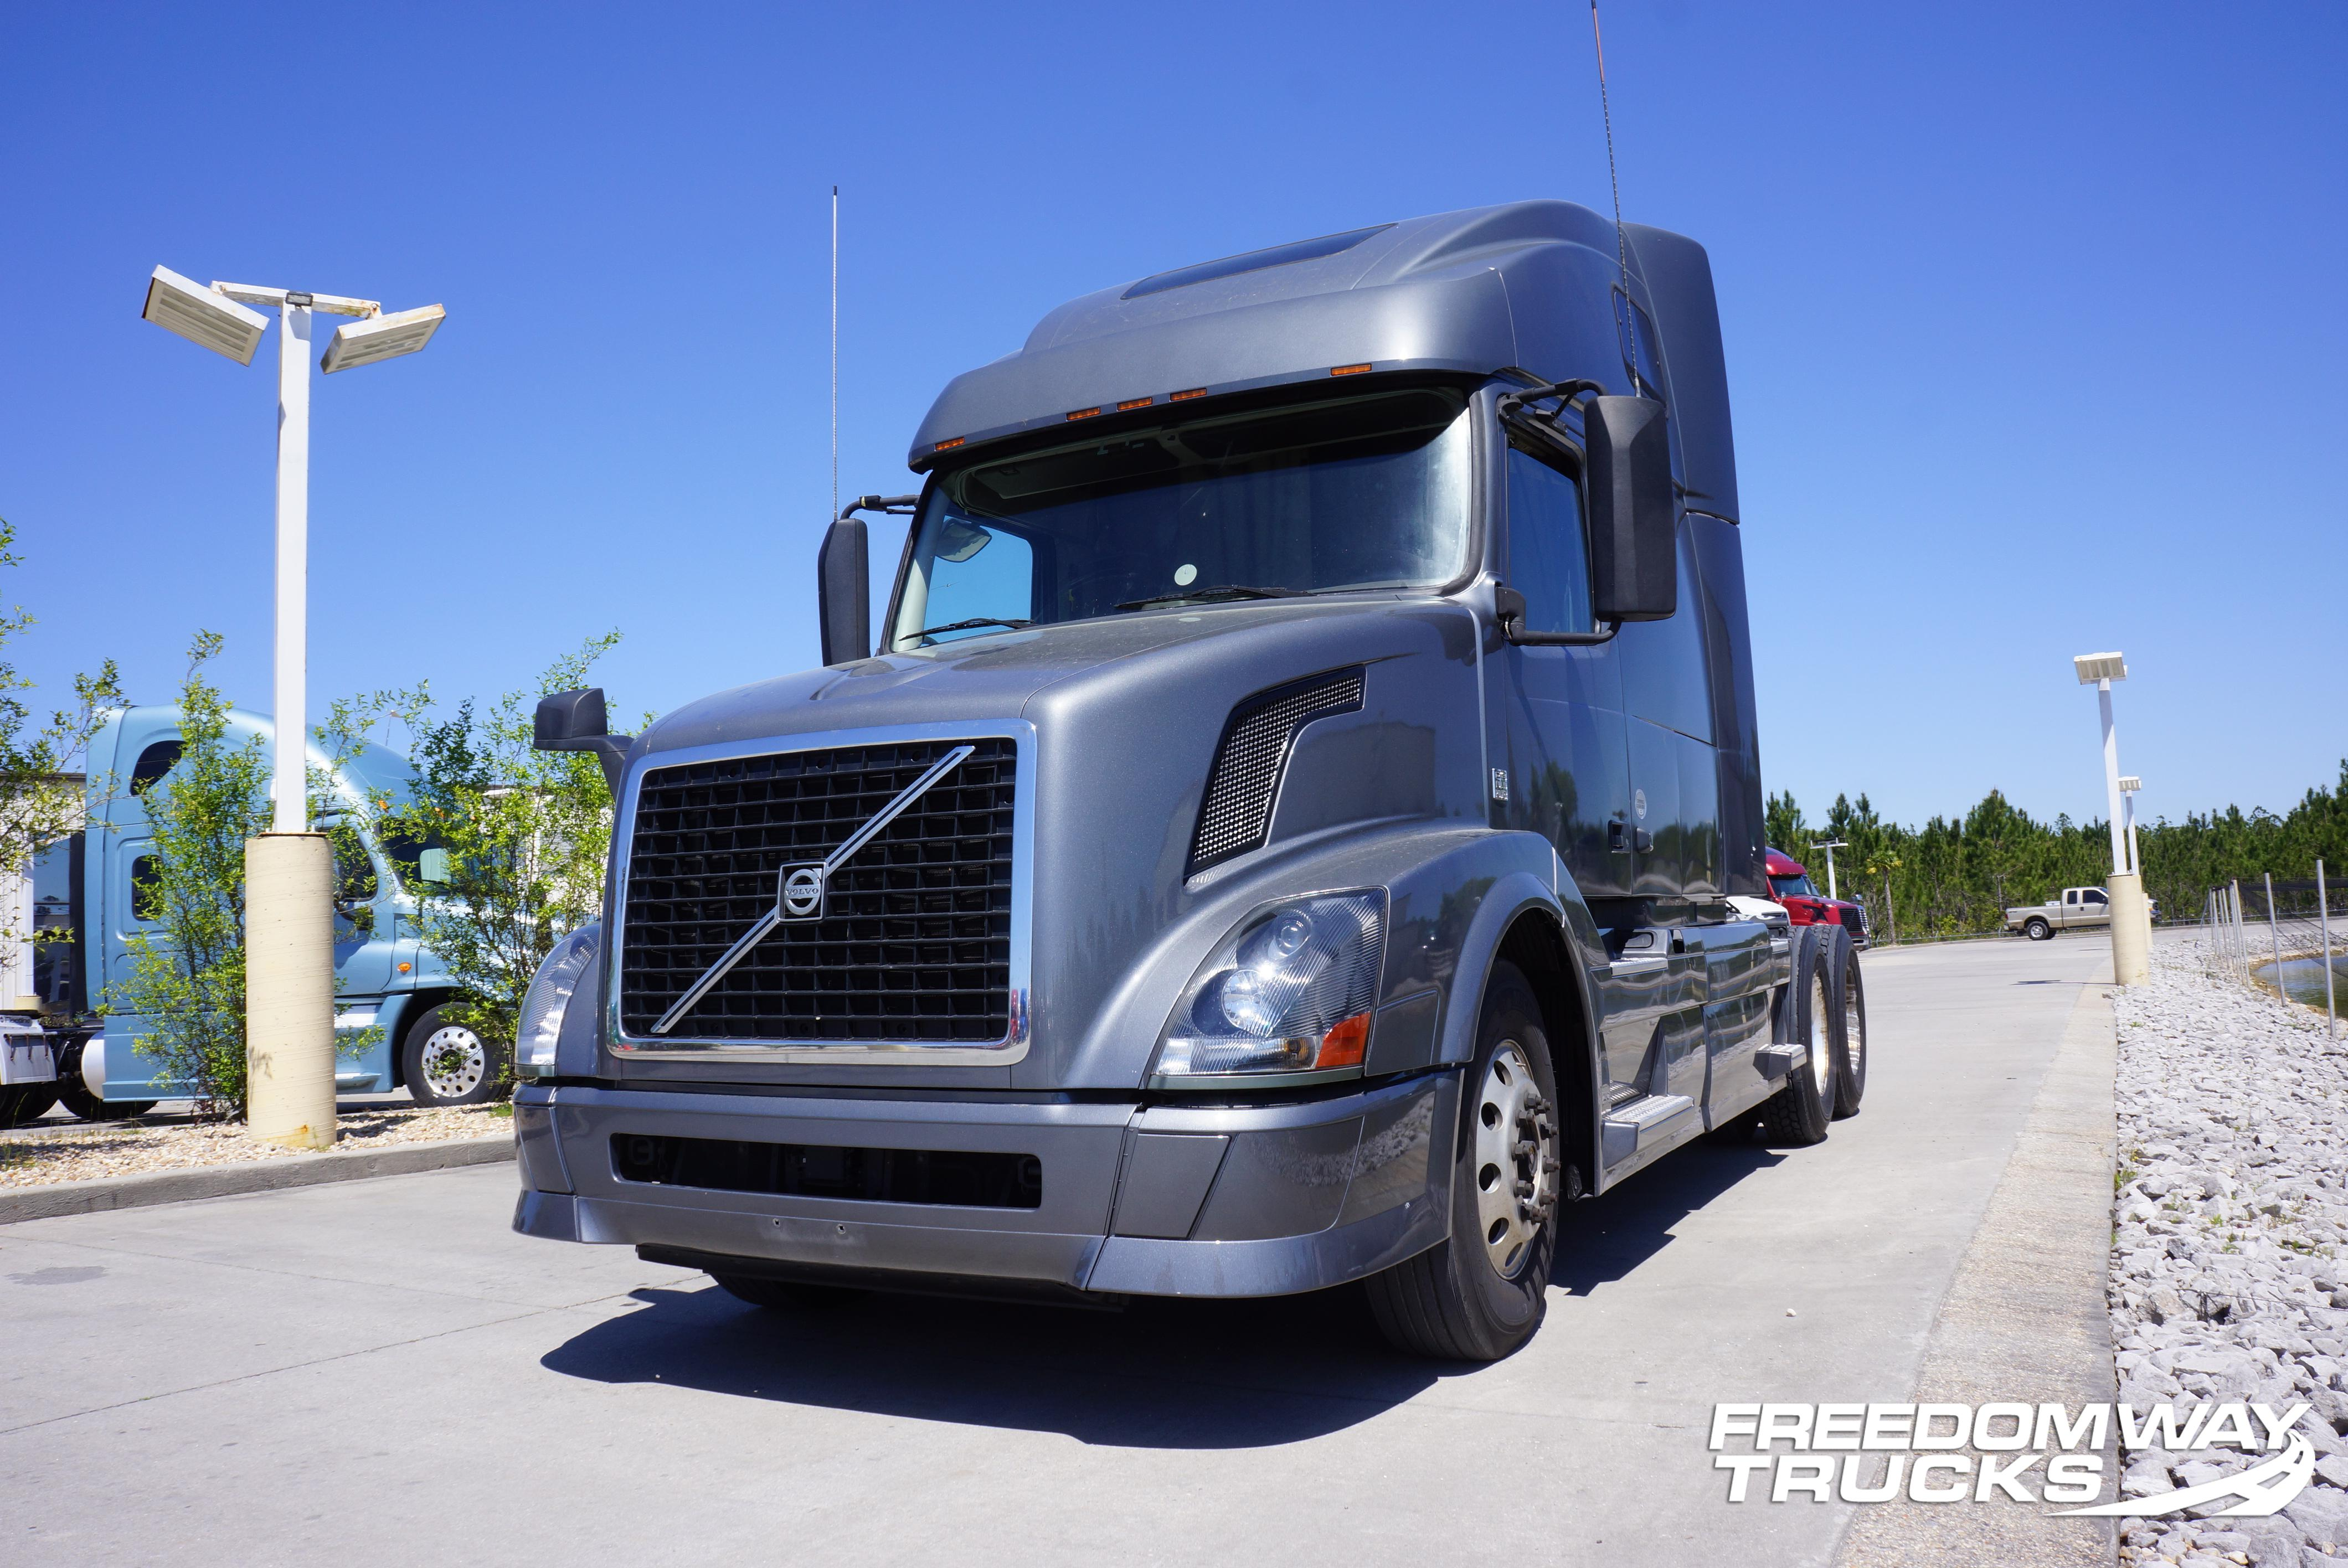 USED 2014 VOLVO 670 DAYCAB TRUCK #142041